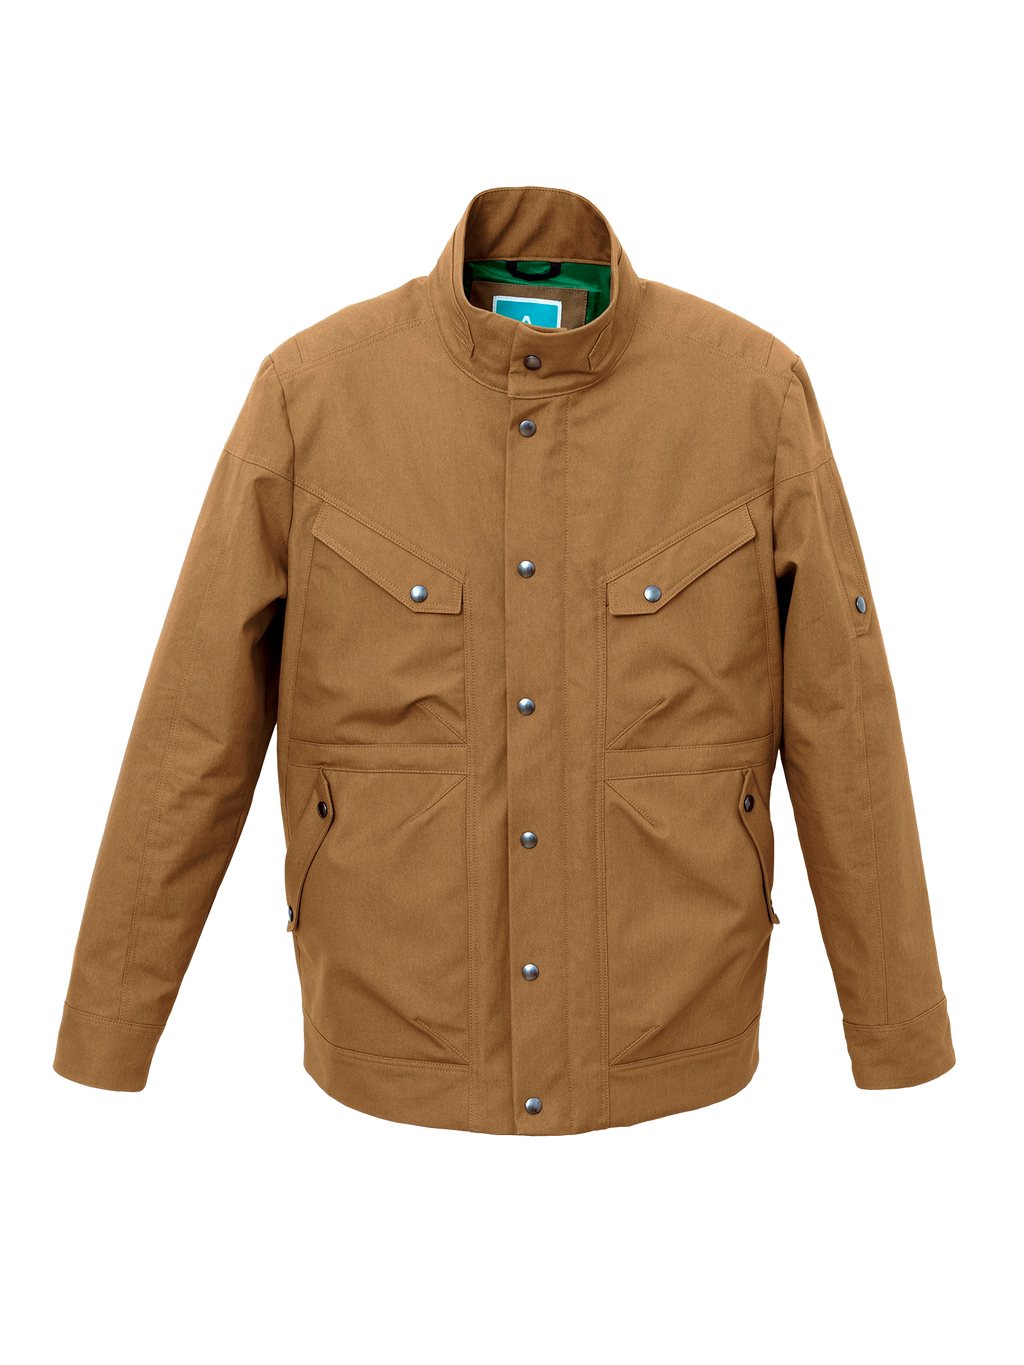 Mens Waxed Cotton Jacket K-204 ATLAS